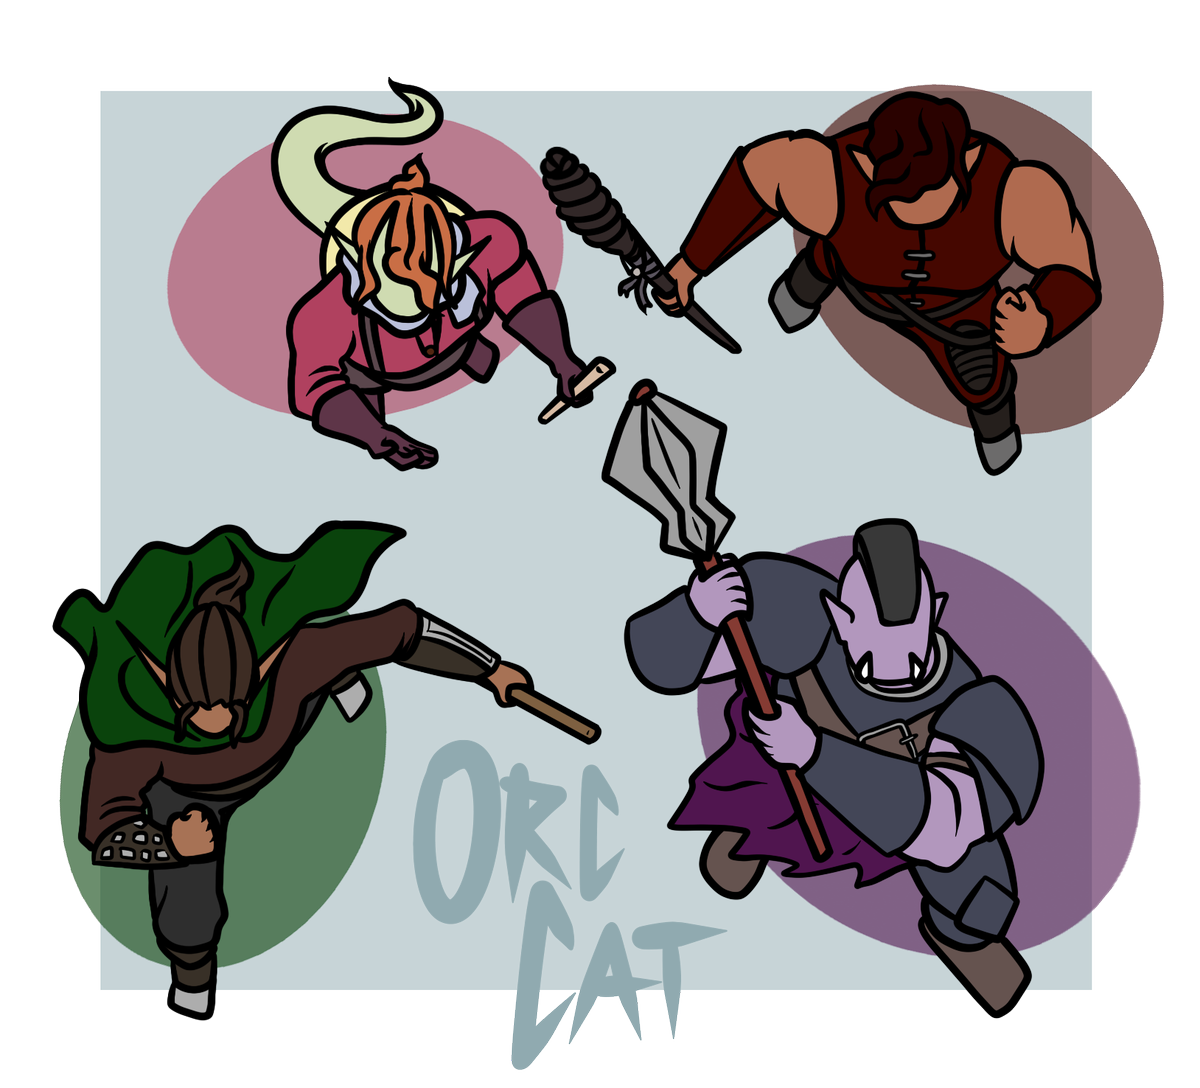 A set of 4 #roll20 tokens for the PCs in a campaign I'